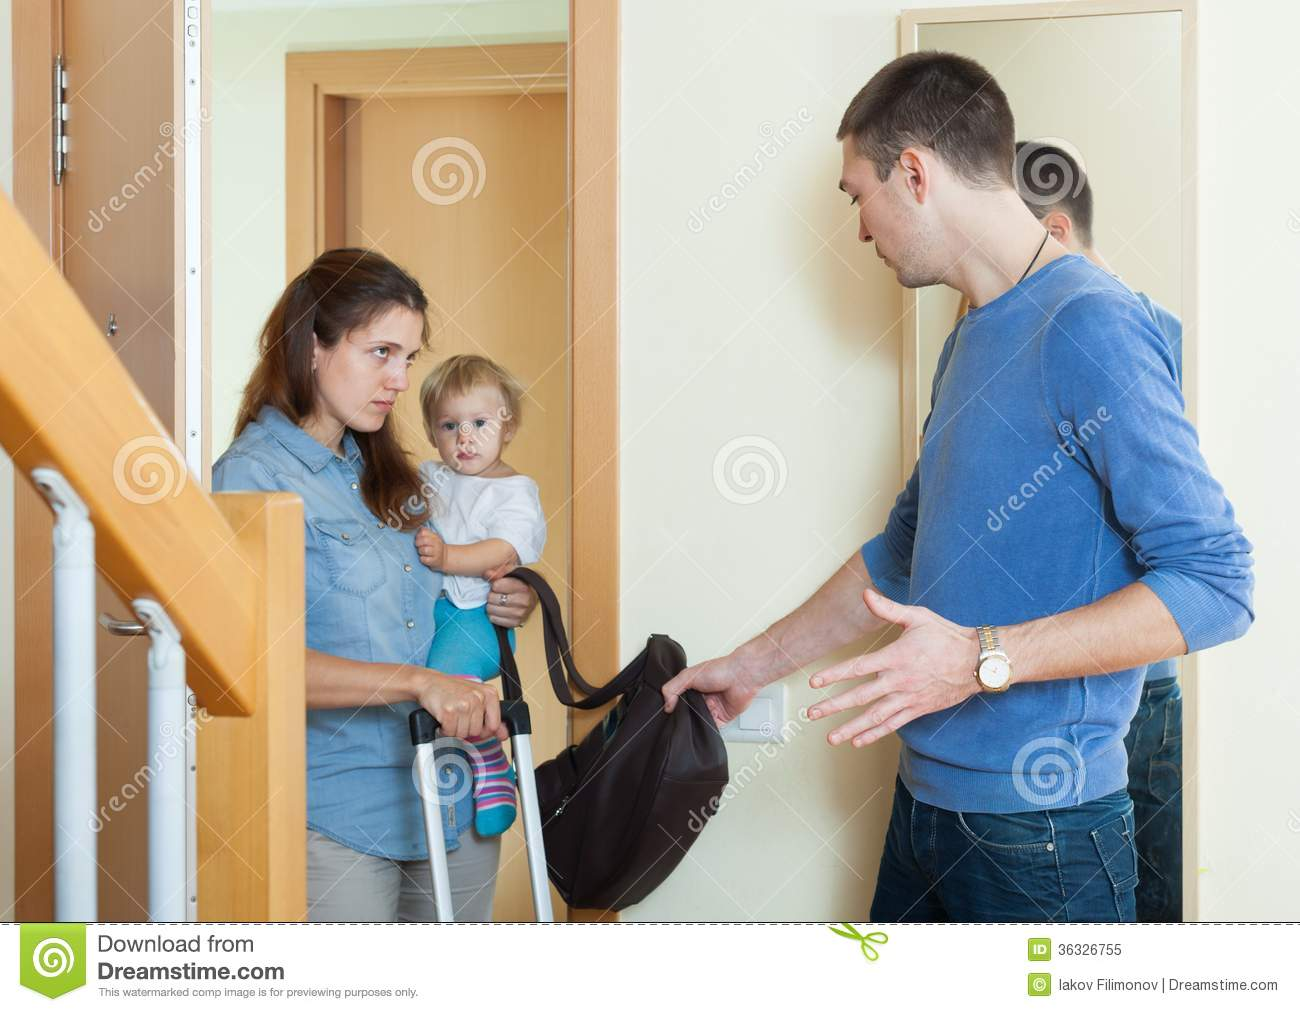 Depressed Woman Leaving From Husband Stock Image - Image